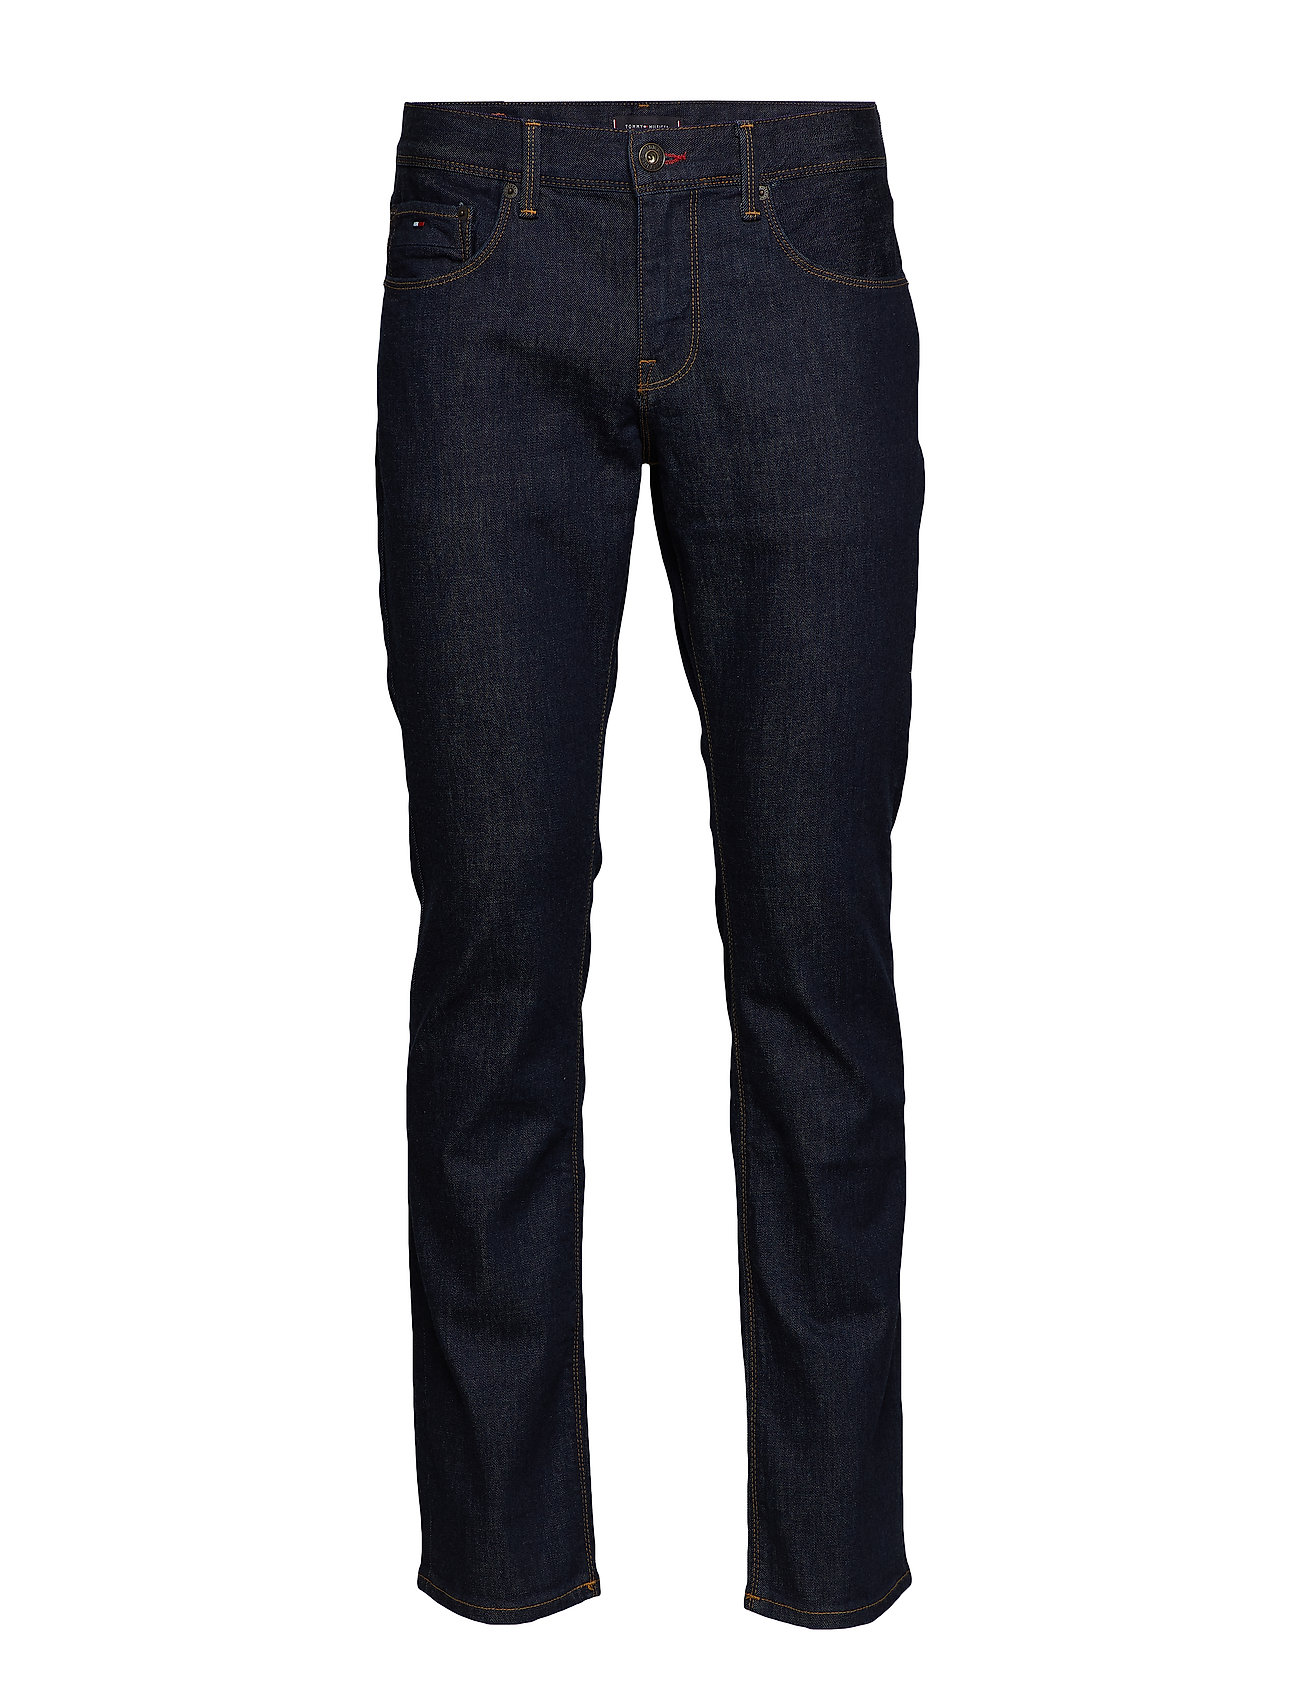 Tommy Hilfiger CORE DENTON STRAIGHT - NEW CLEAN RINSE